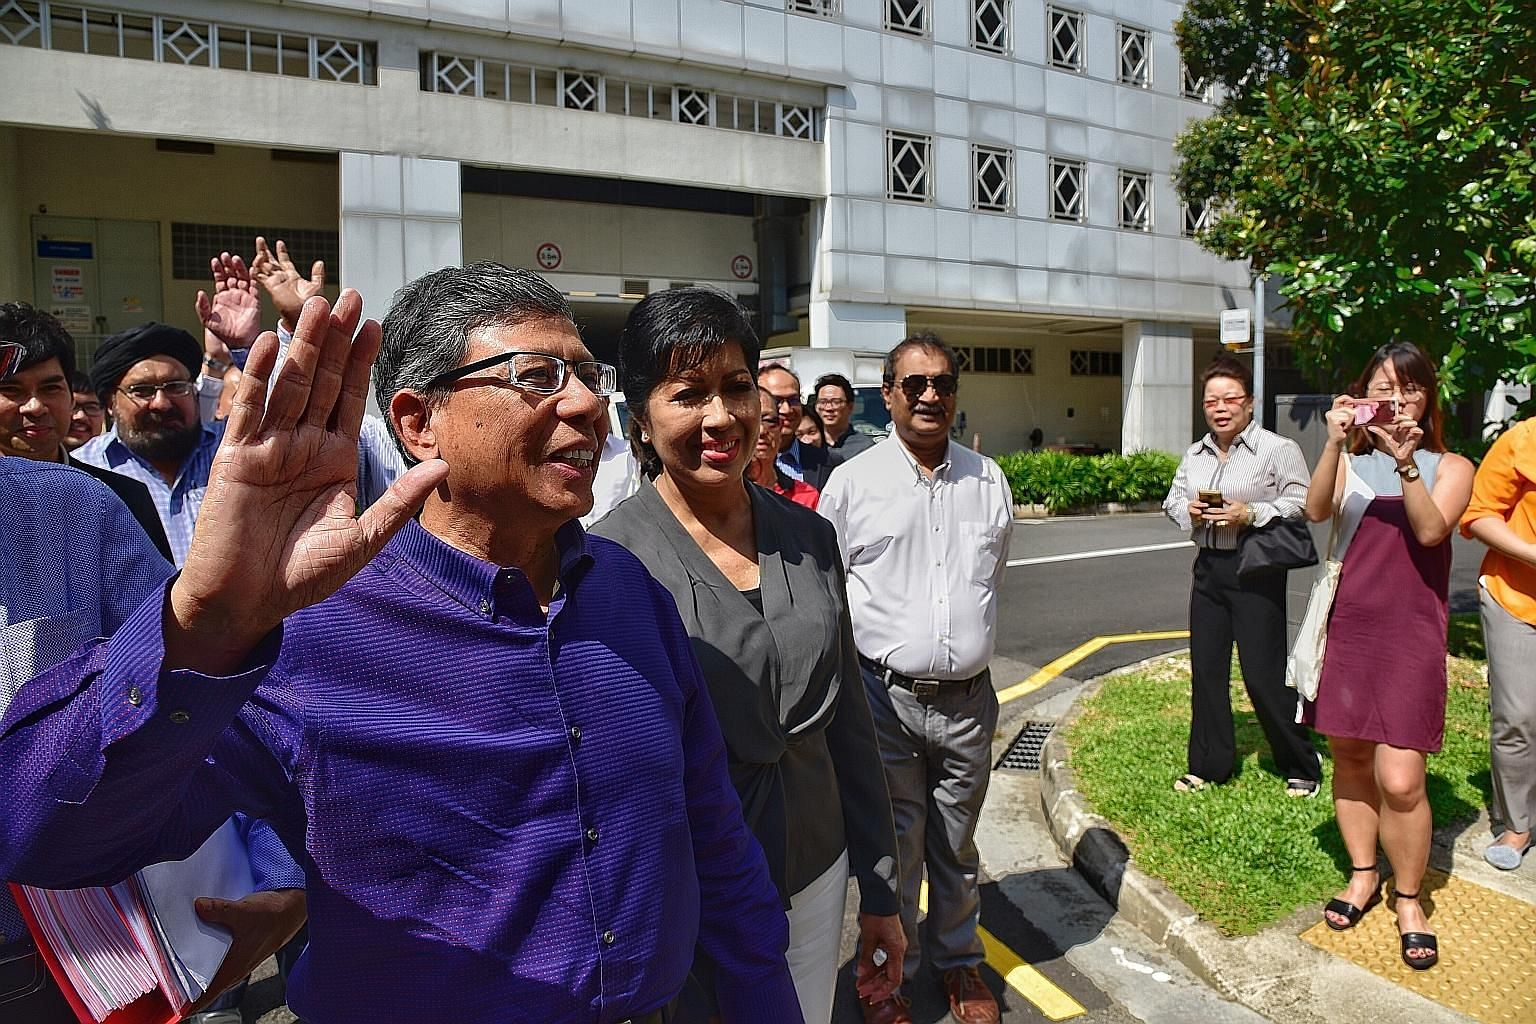 Mr Mohamed Salleh Marican and his wife Sapiyah Abu Bakar at the Elections Department yesterday, accompanied by supporters.